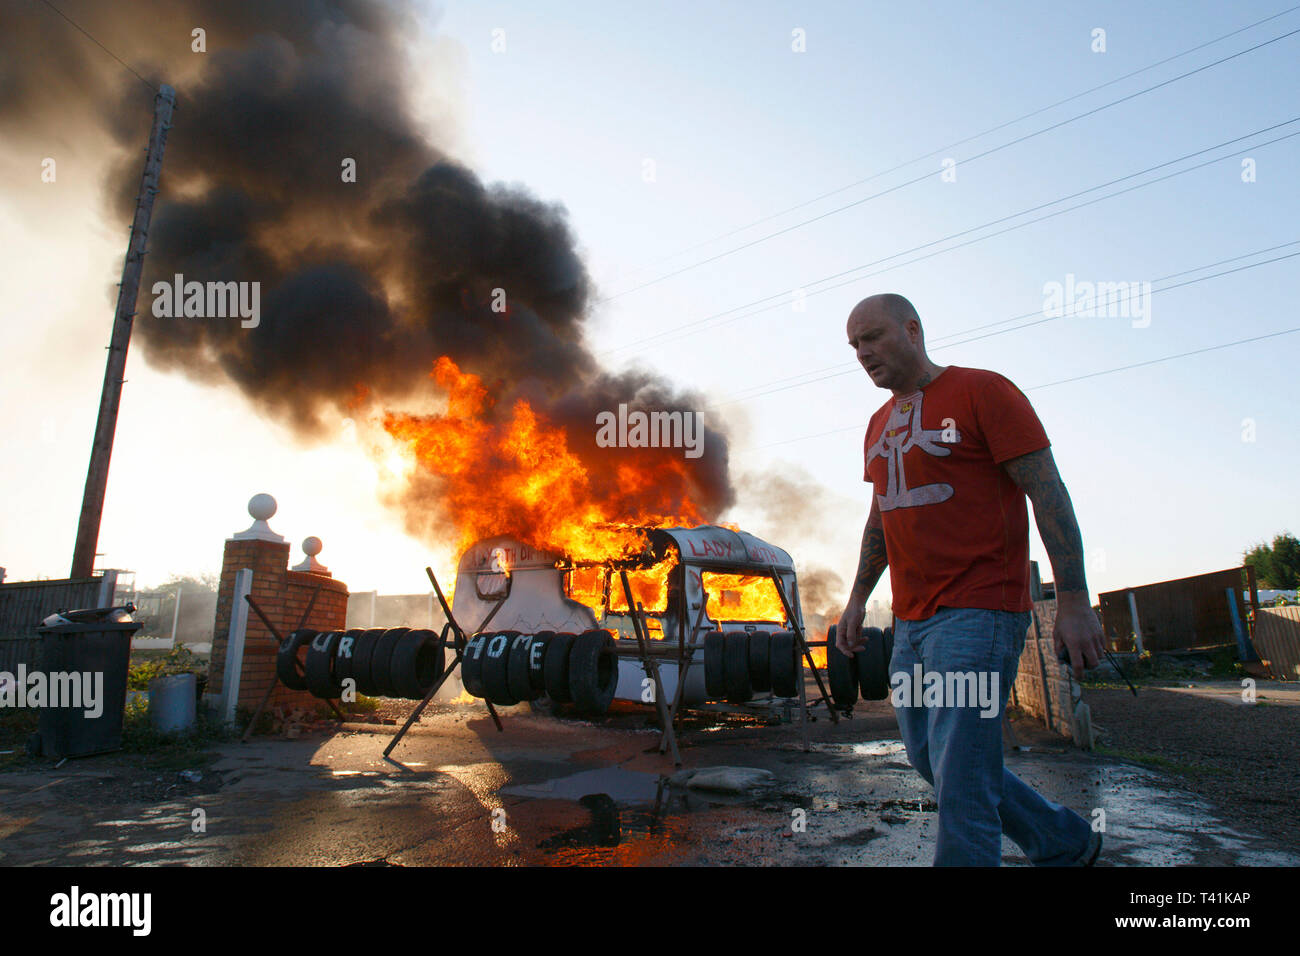 A man walks past a burning barricade during the eviction of Dale Farm. Basildon. Essex. 19 October 2011. - Stock Image